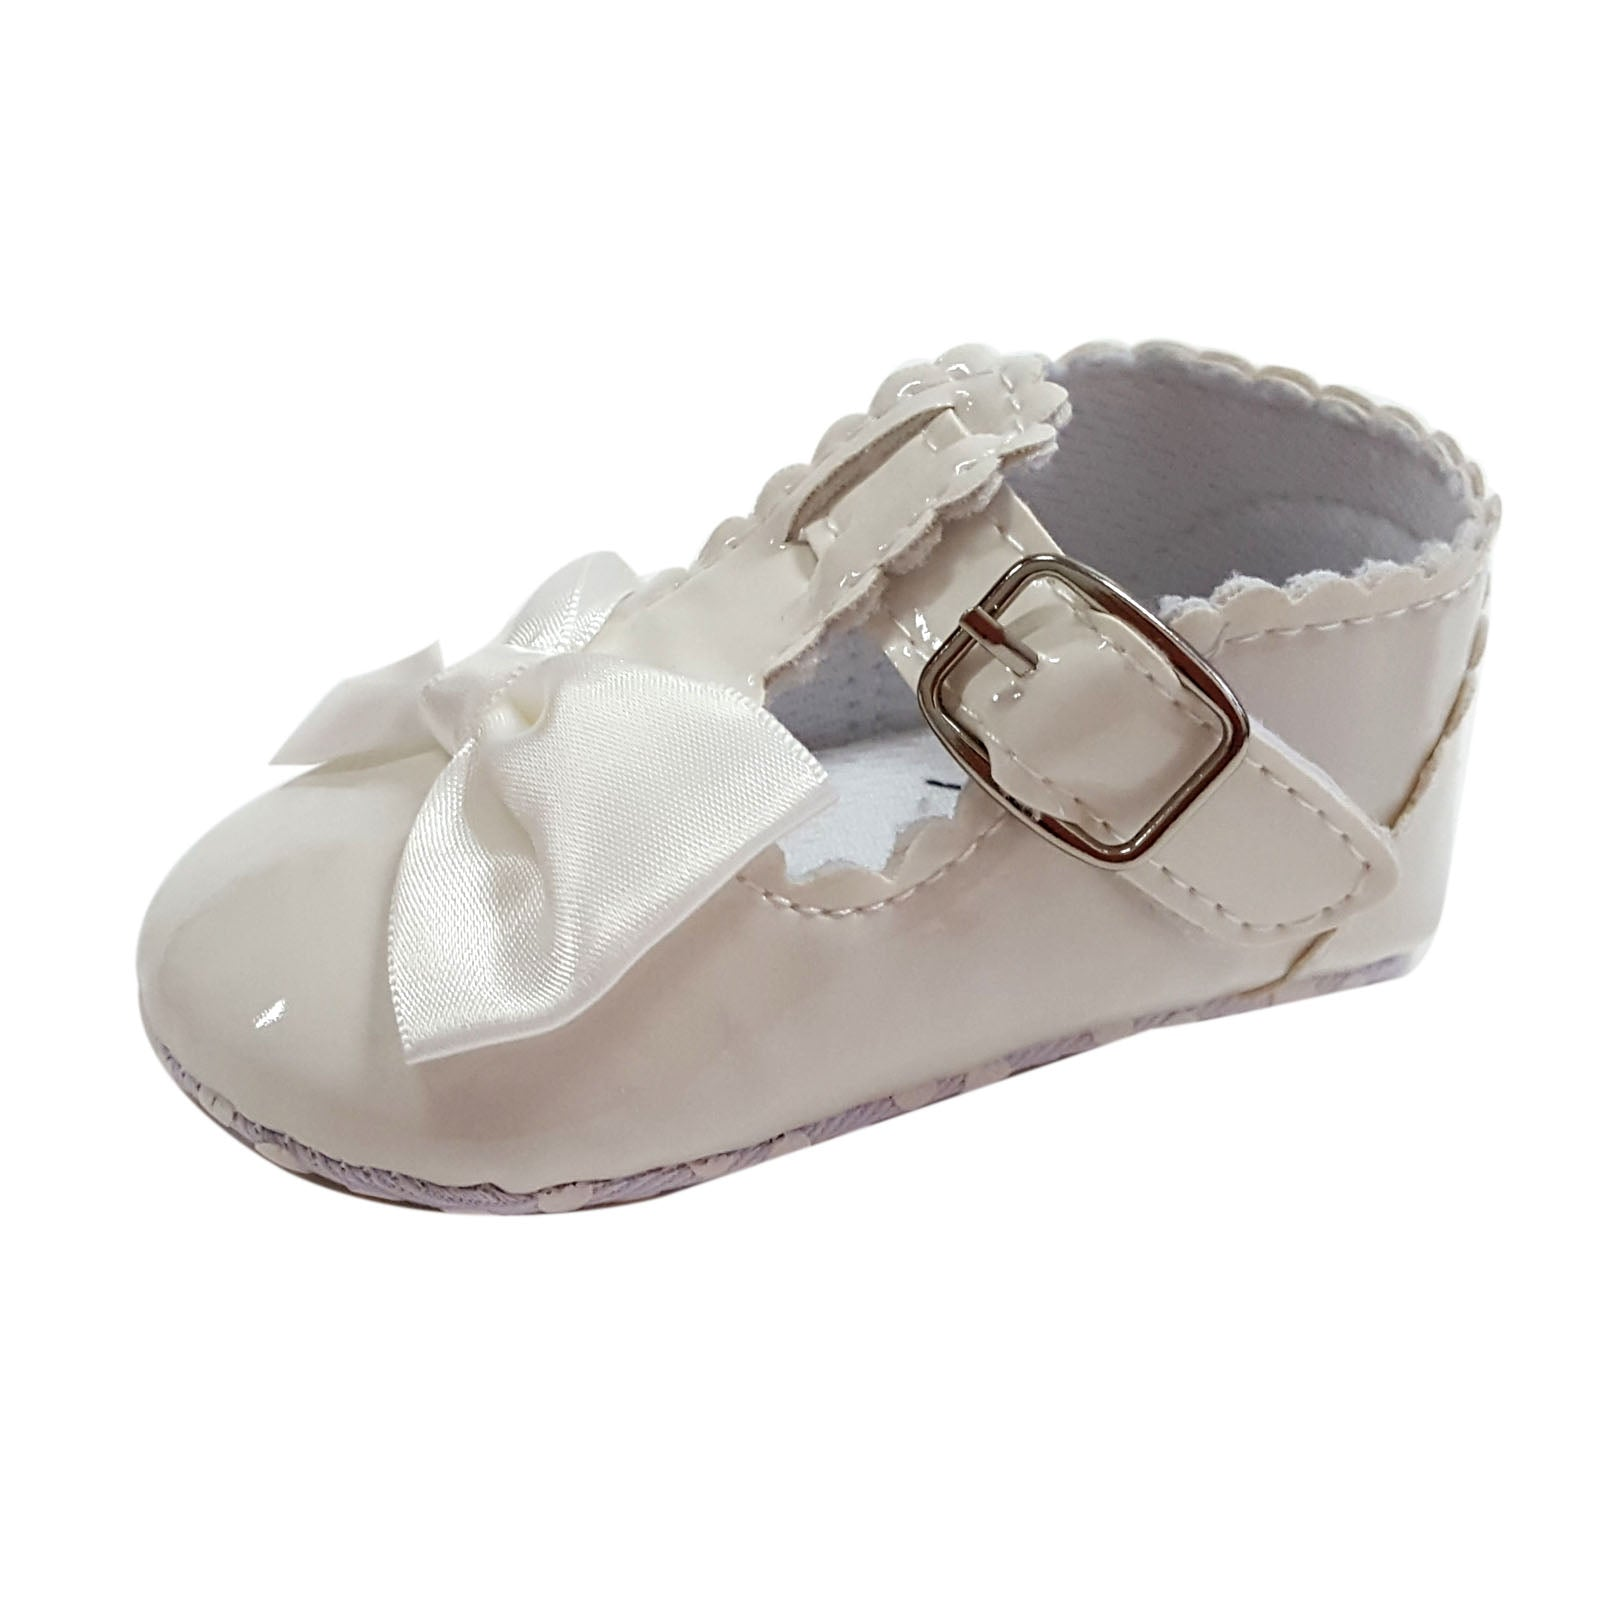 Francesca (Pre-Walker Shoes) - B121 White Patent